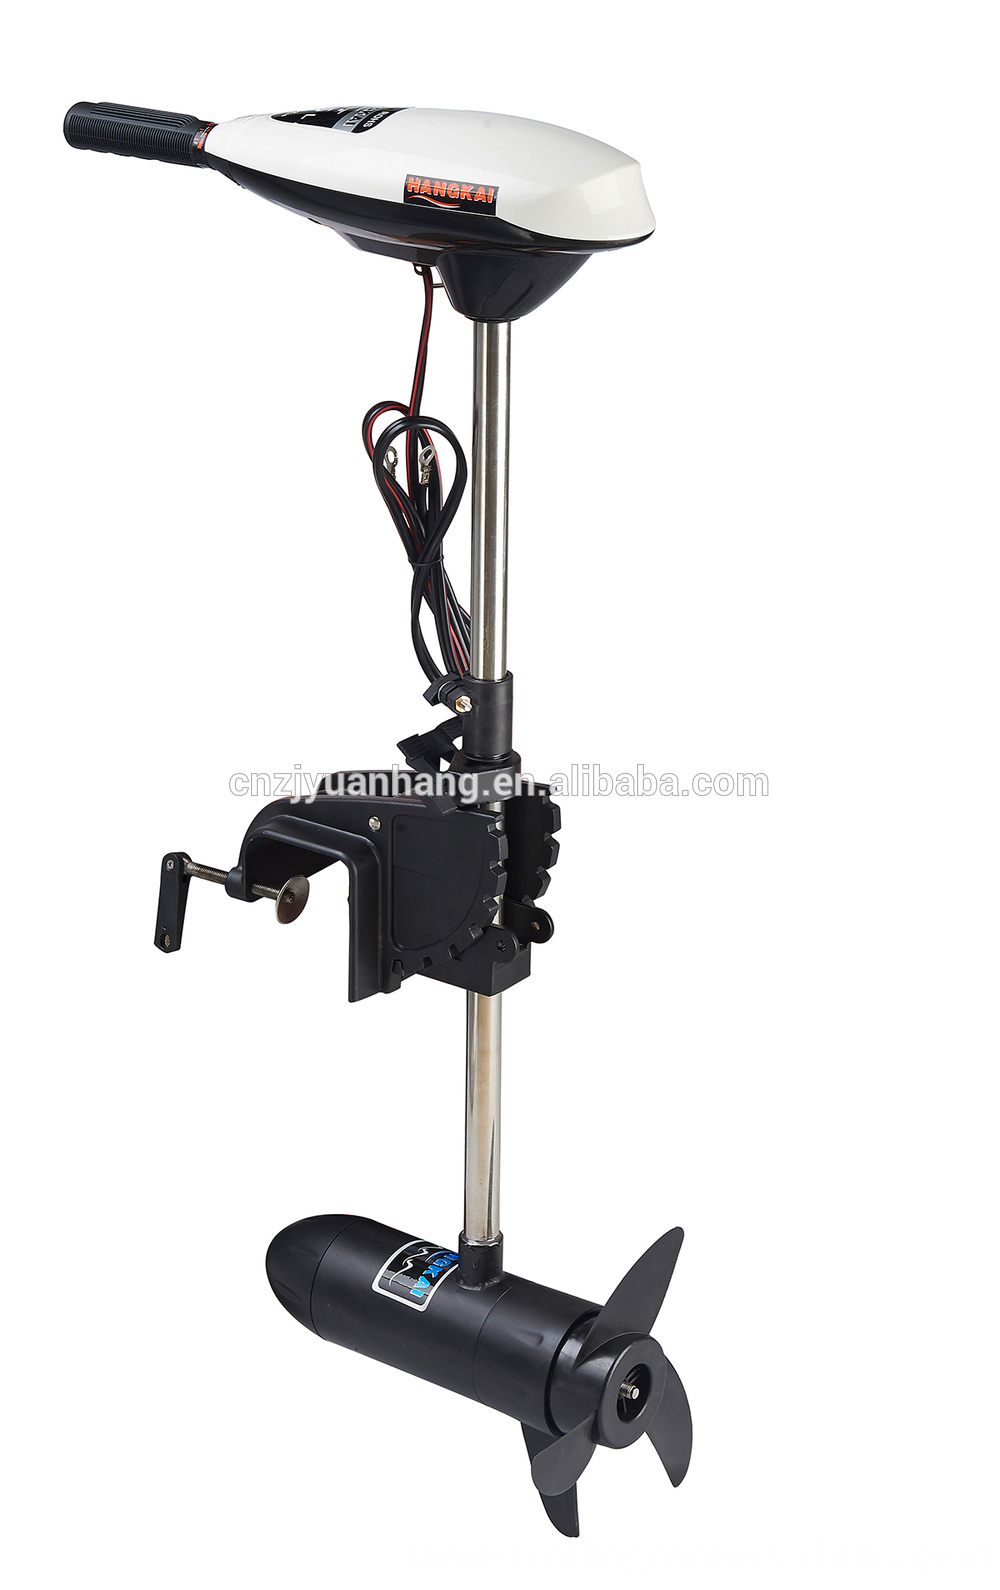 hangkai vessels 55lb thrust electric trolling motor